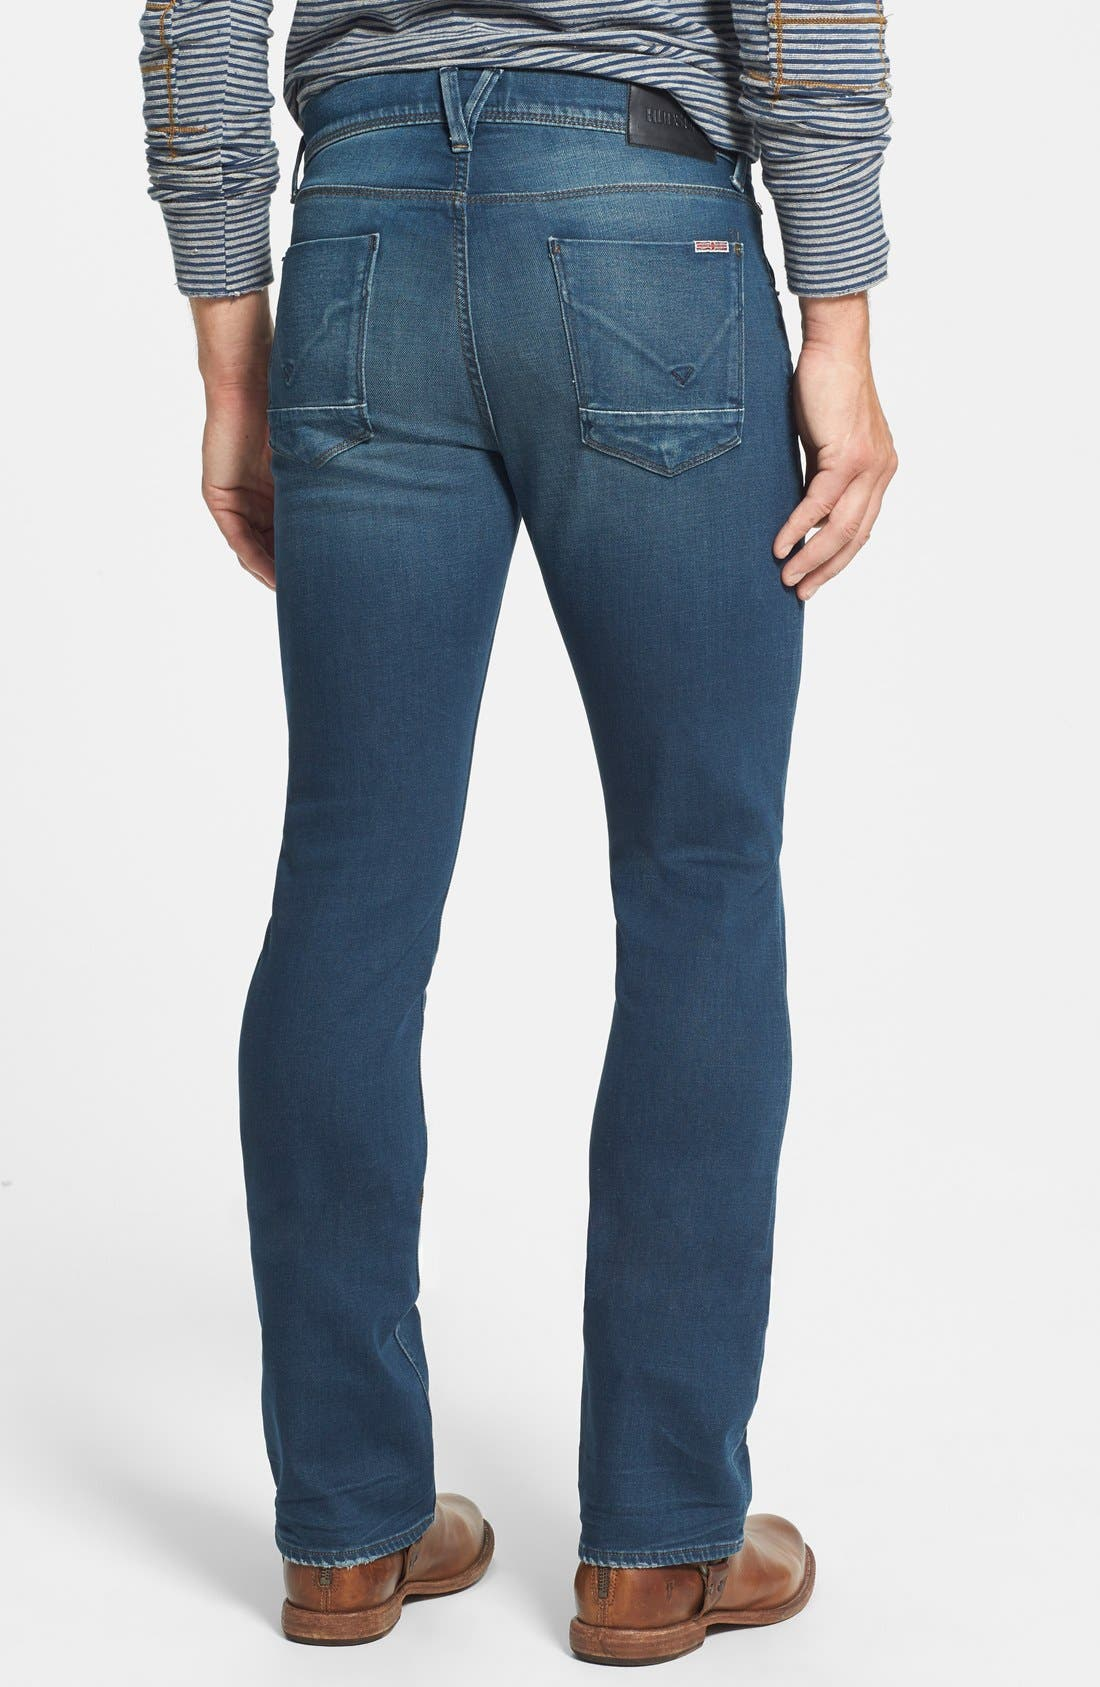 HUDSON JEANS,                             'Clifton' Bootcut Jeans,                             Alternate thumbnail 3, color,                             403